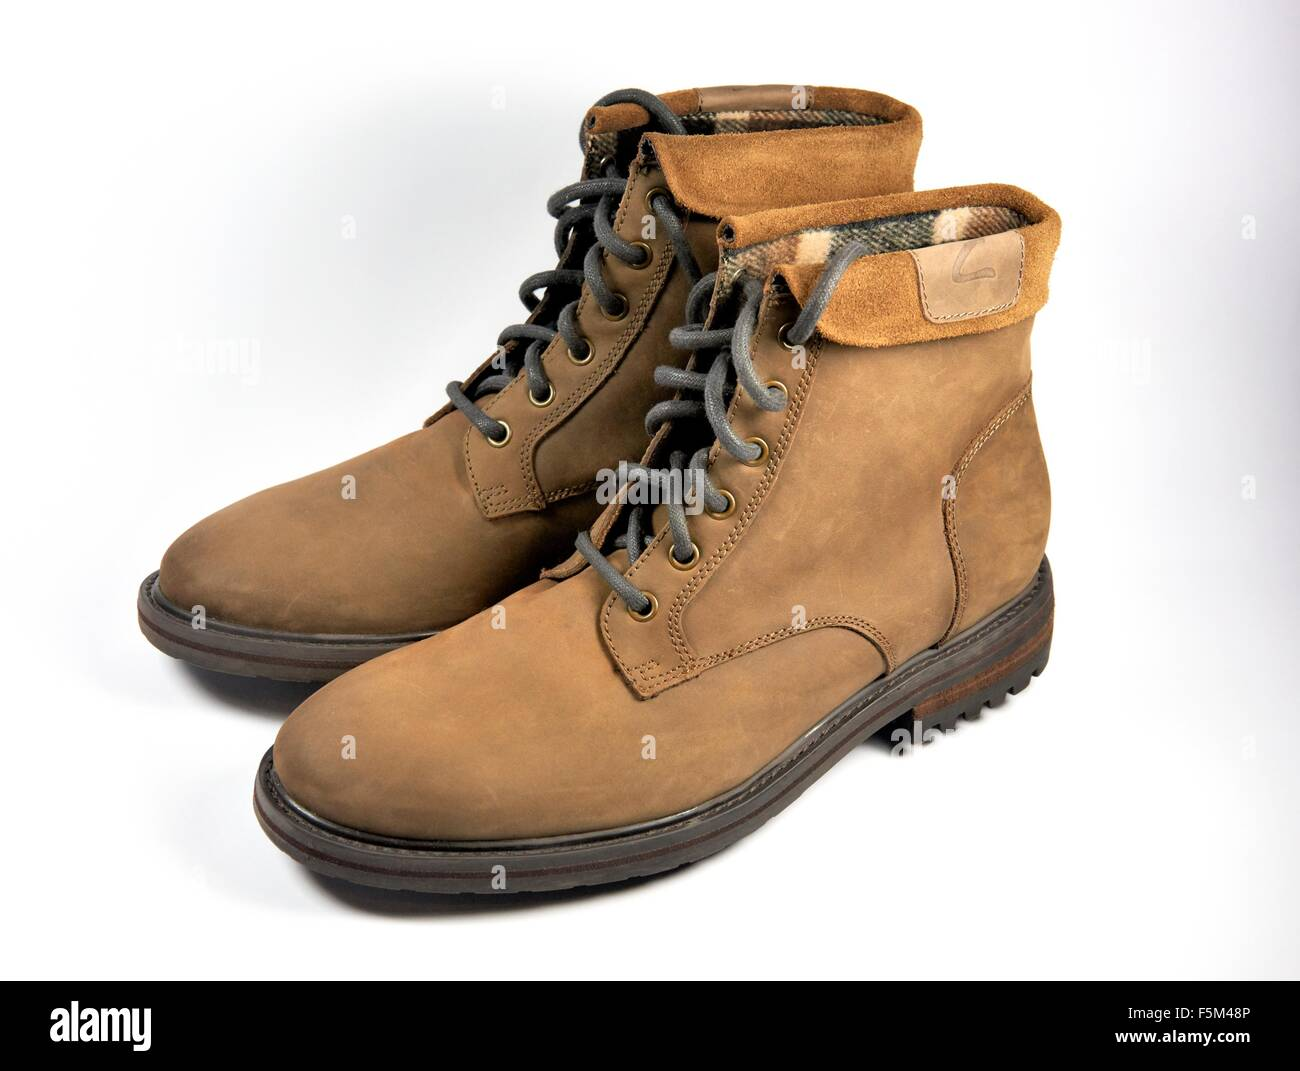 f19d94e3e09 Mens Brown Boots Stock Photos & Mens Brown Boots Stock Images - Alamy